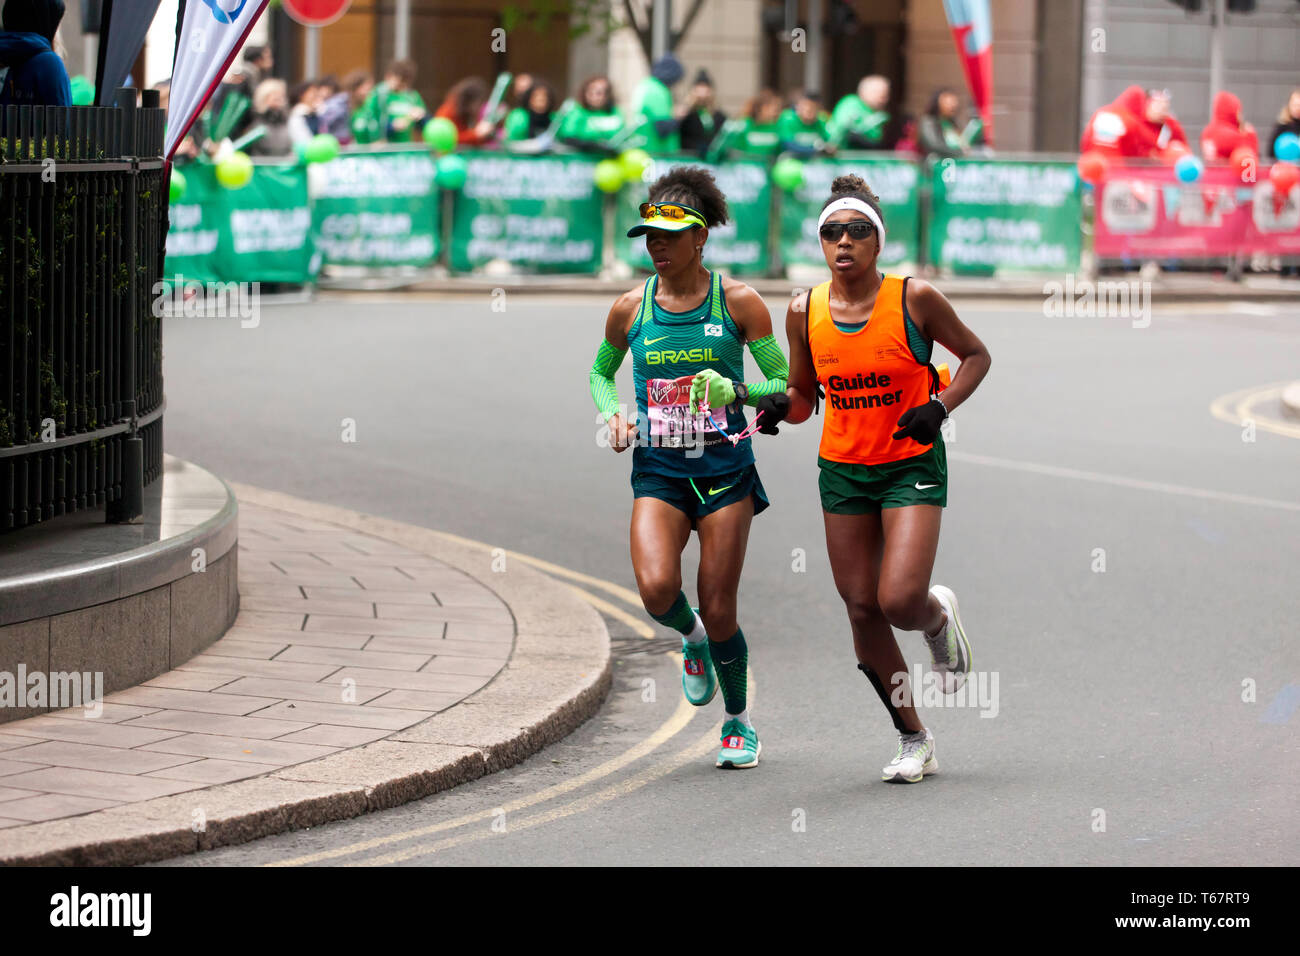 Edneusa de Jesus Santos Dorta with her guide runner, competing in the World Para 2019 London Marathon.  She went on to finish 2nd, in a time of 03:13:17 Stock Photo